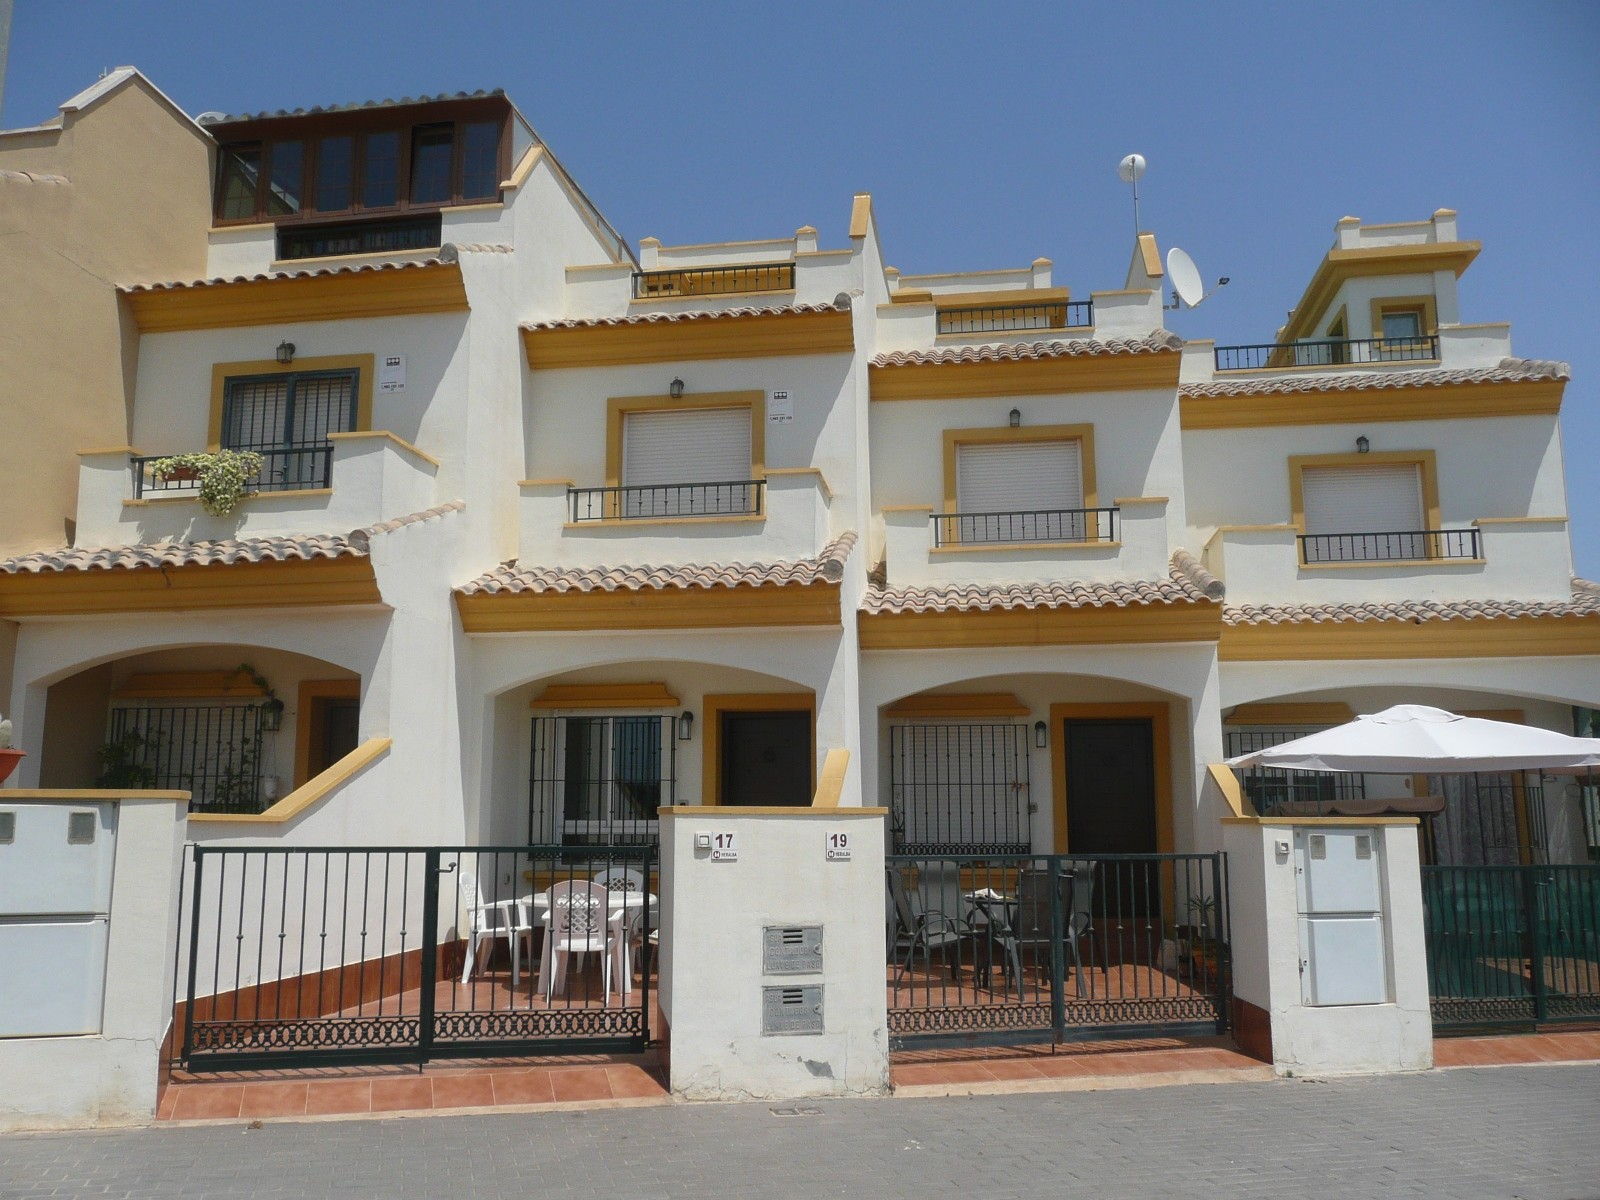 Torre pacheco townhouse 2 bedroom property for sale in spain for 2 bedroom townhouse